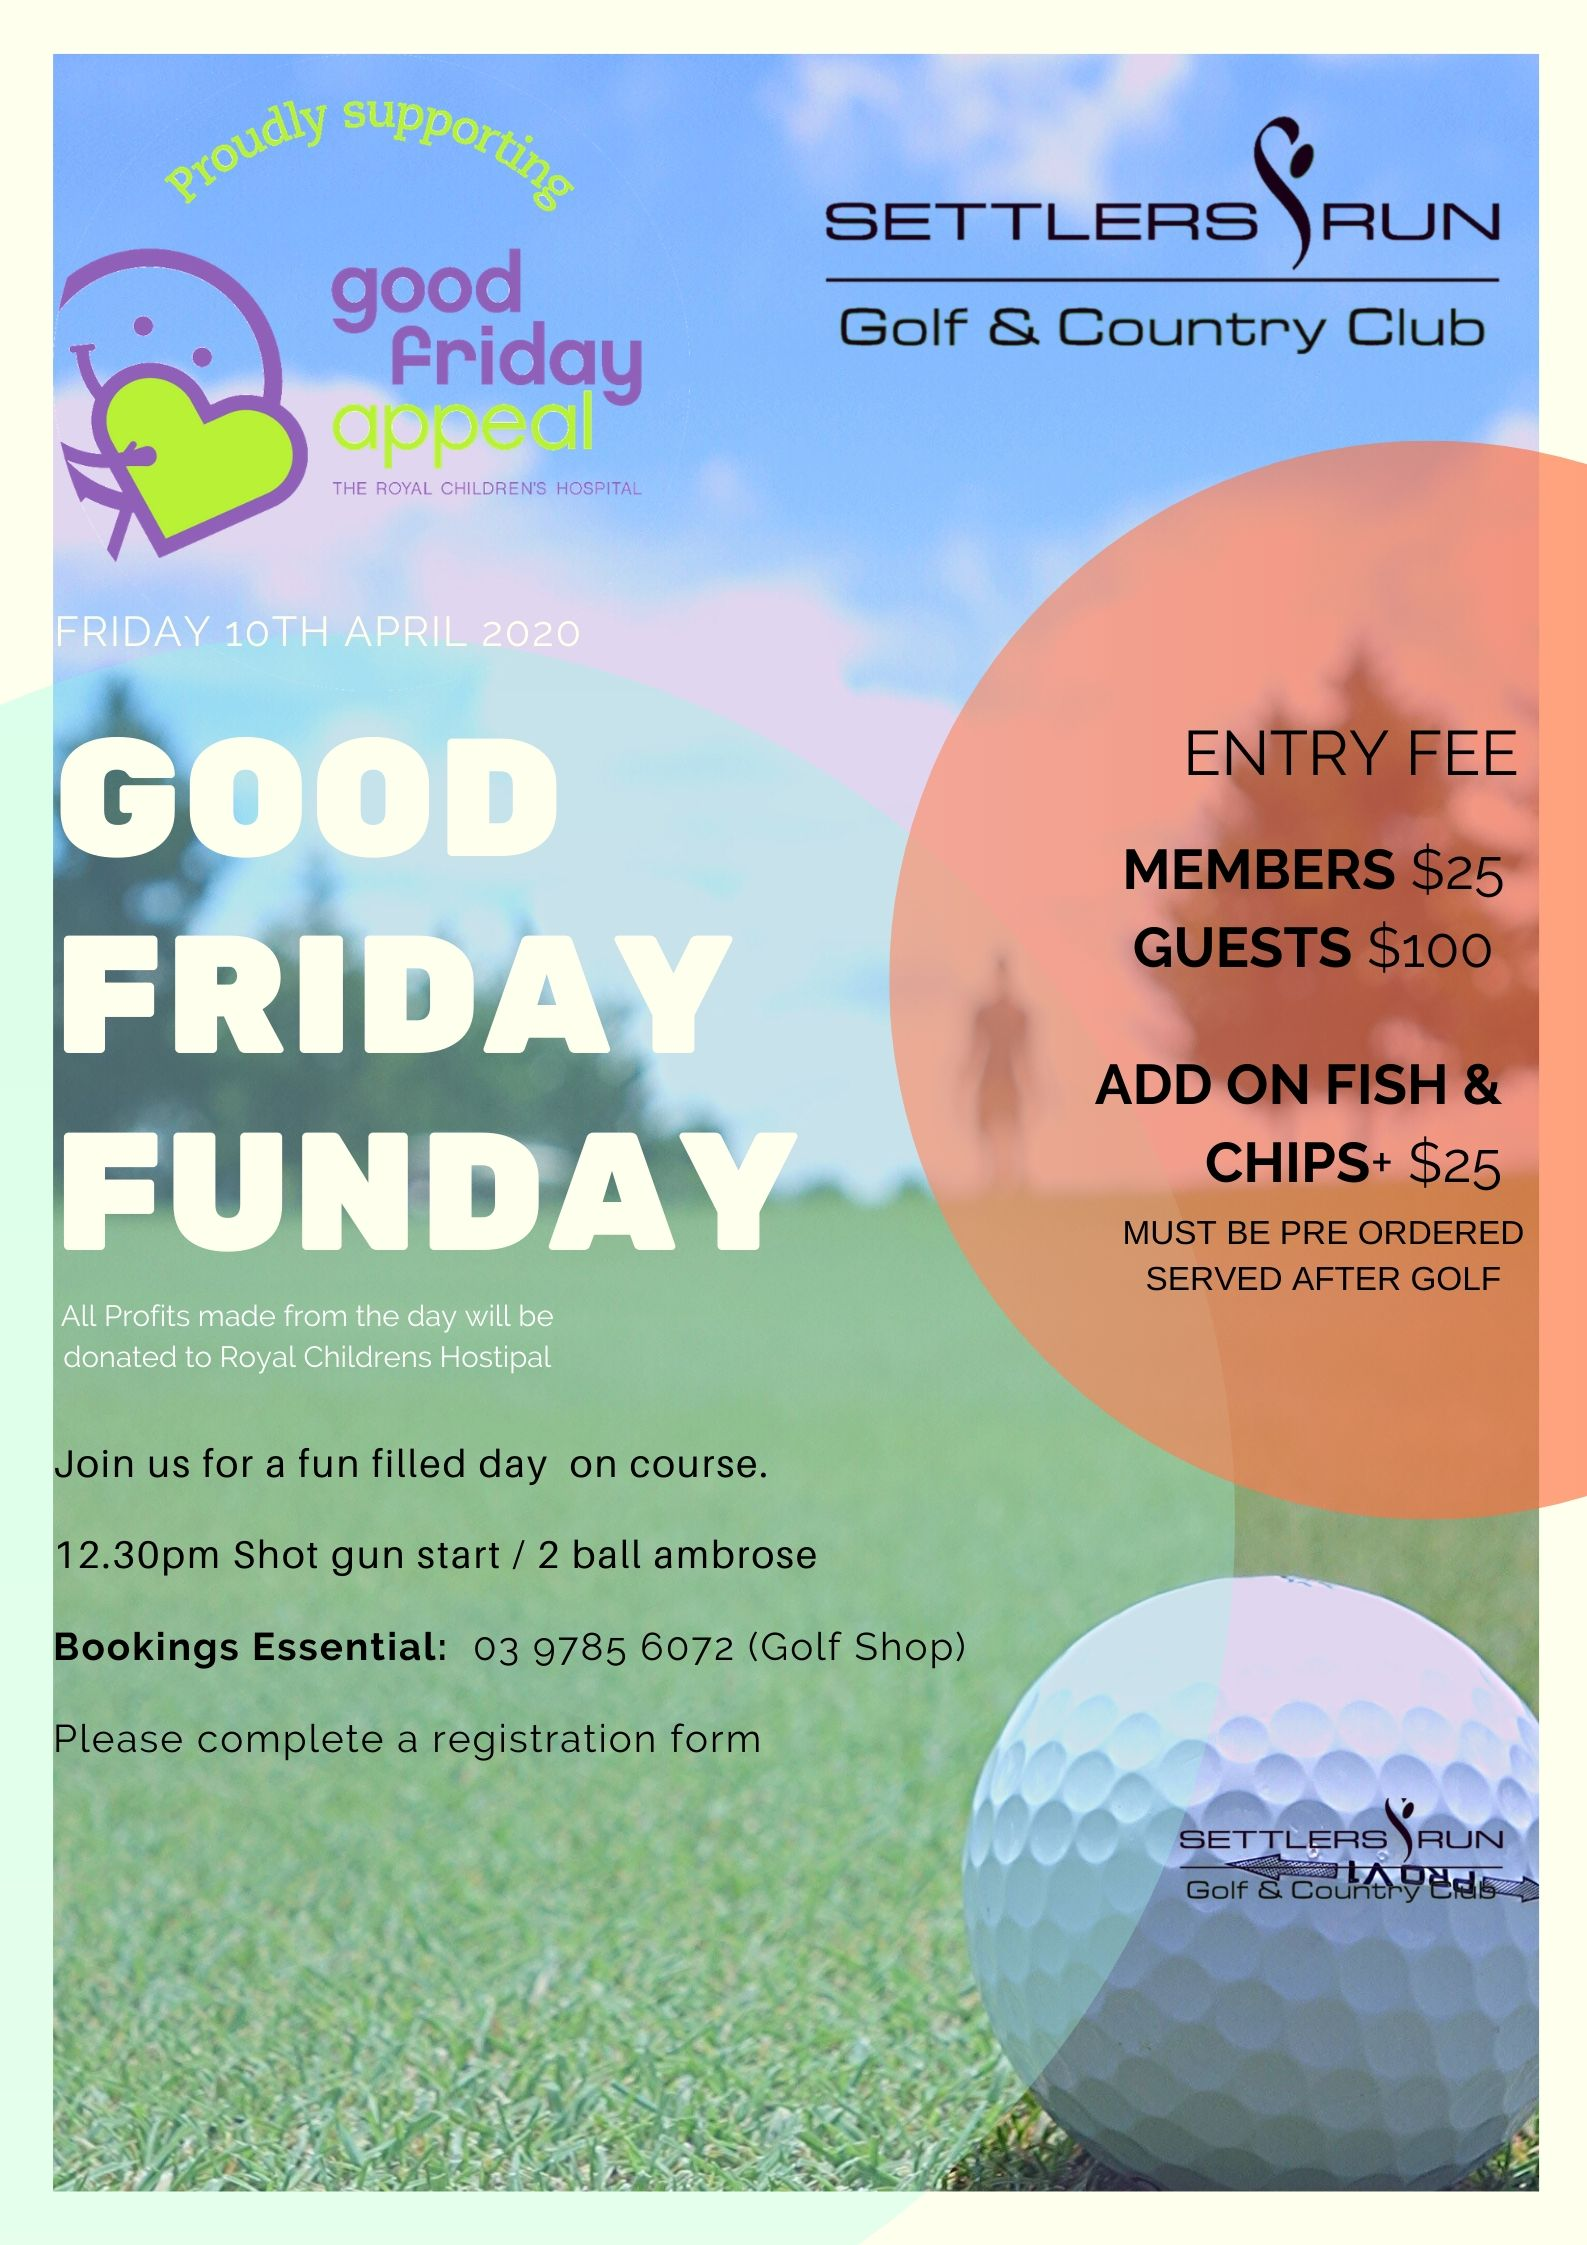 Good Friday Golf Fun Day